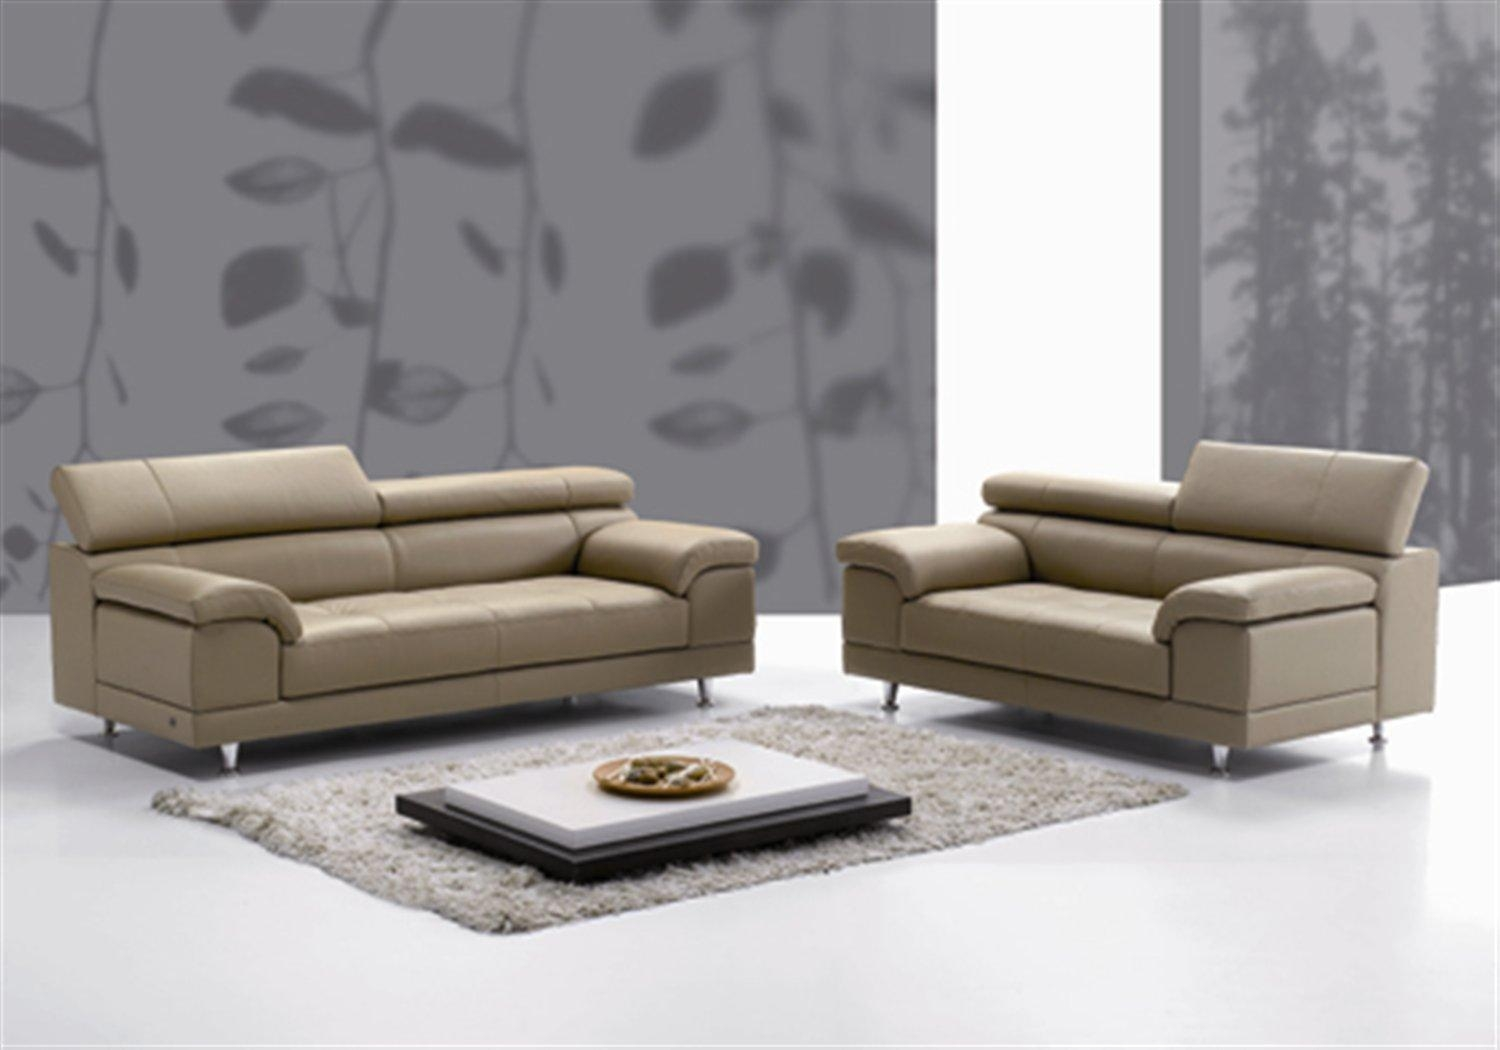 Italian Leather Sofa, Affordable And Quality From Piquattro With Italian Leather Sofas (View 3 of 20)